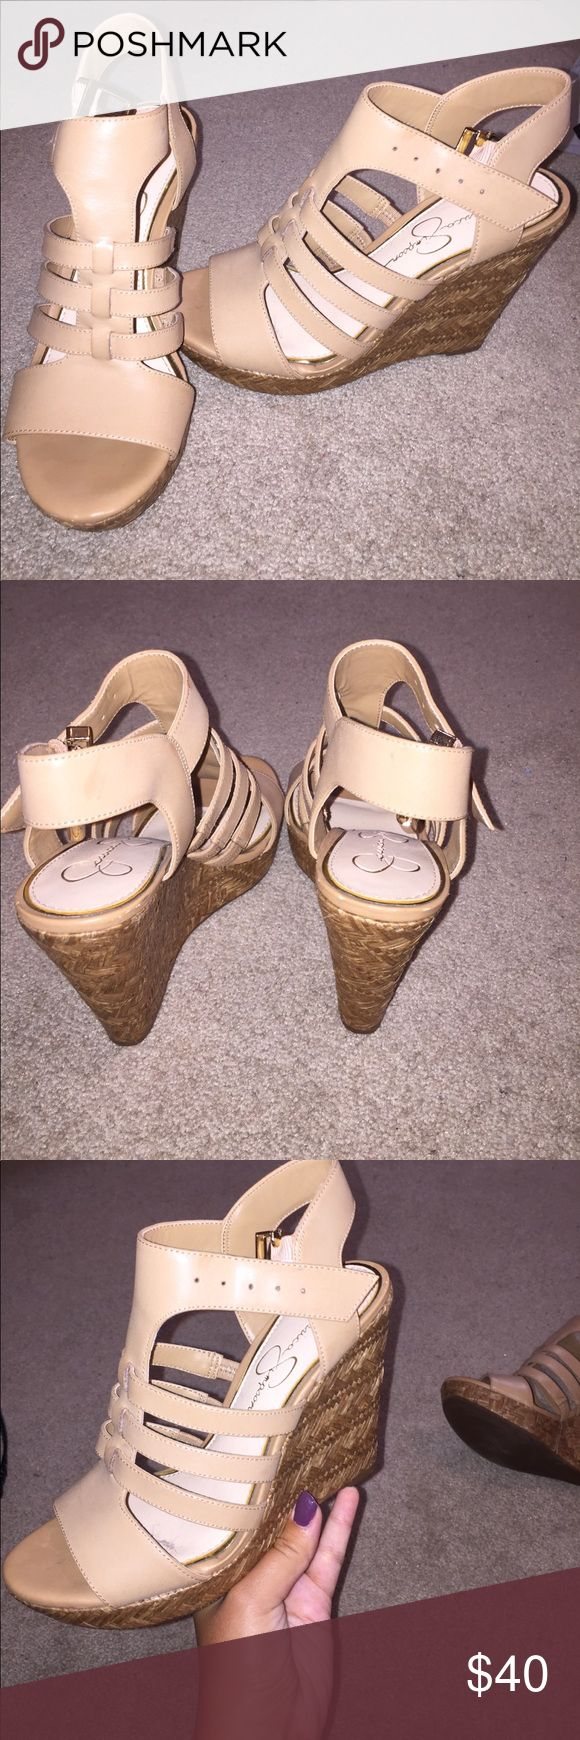 Jessica Simpson wedges 4 inches high, worn once Jessica Simpson Shoes Wedges